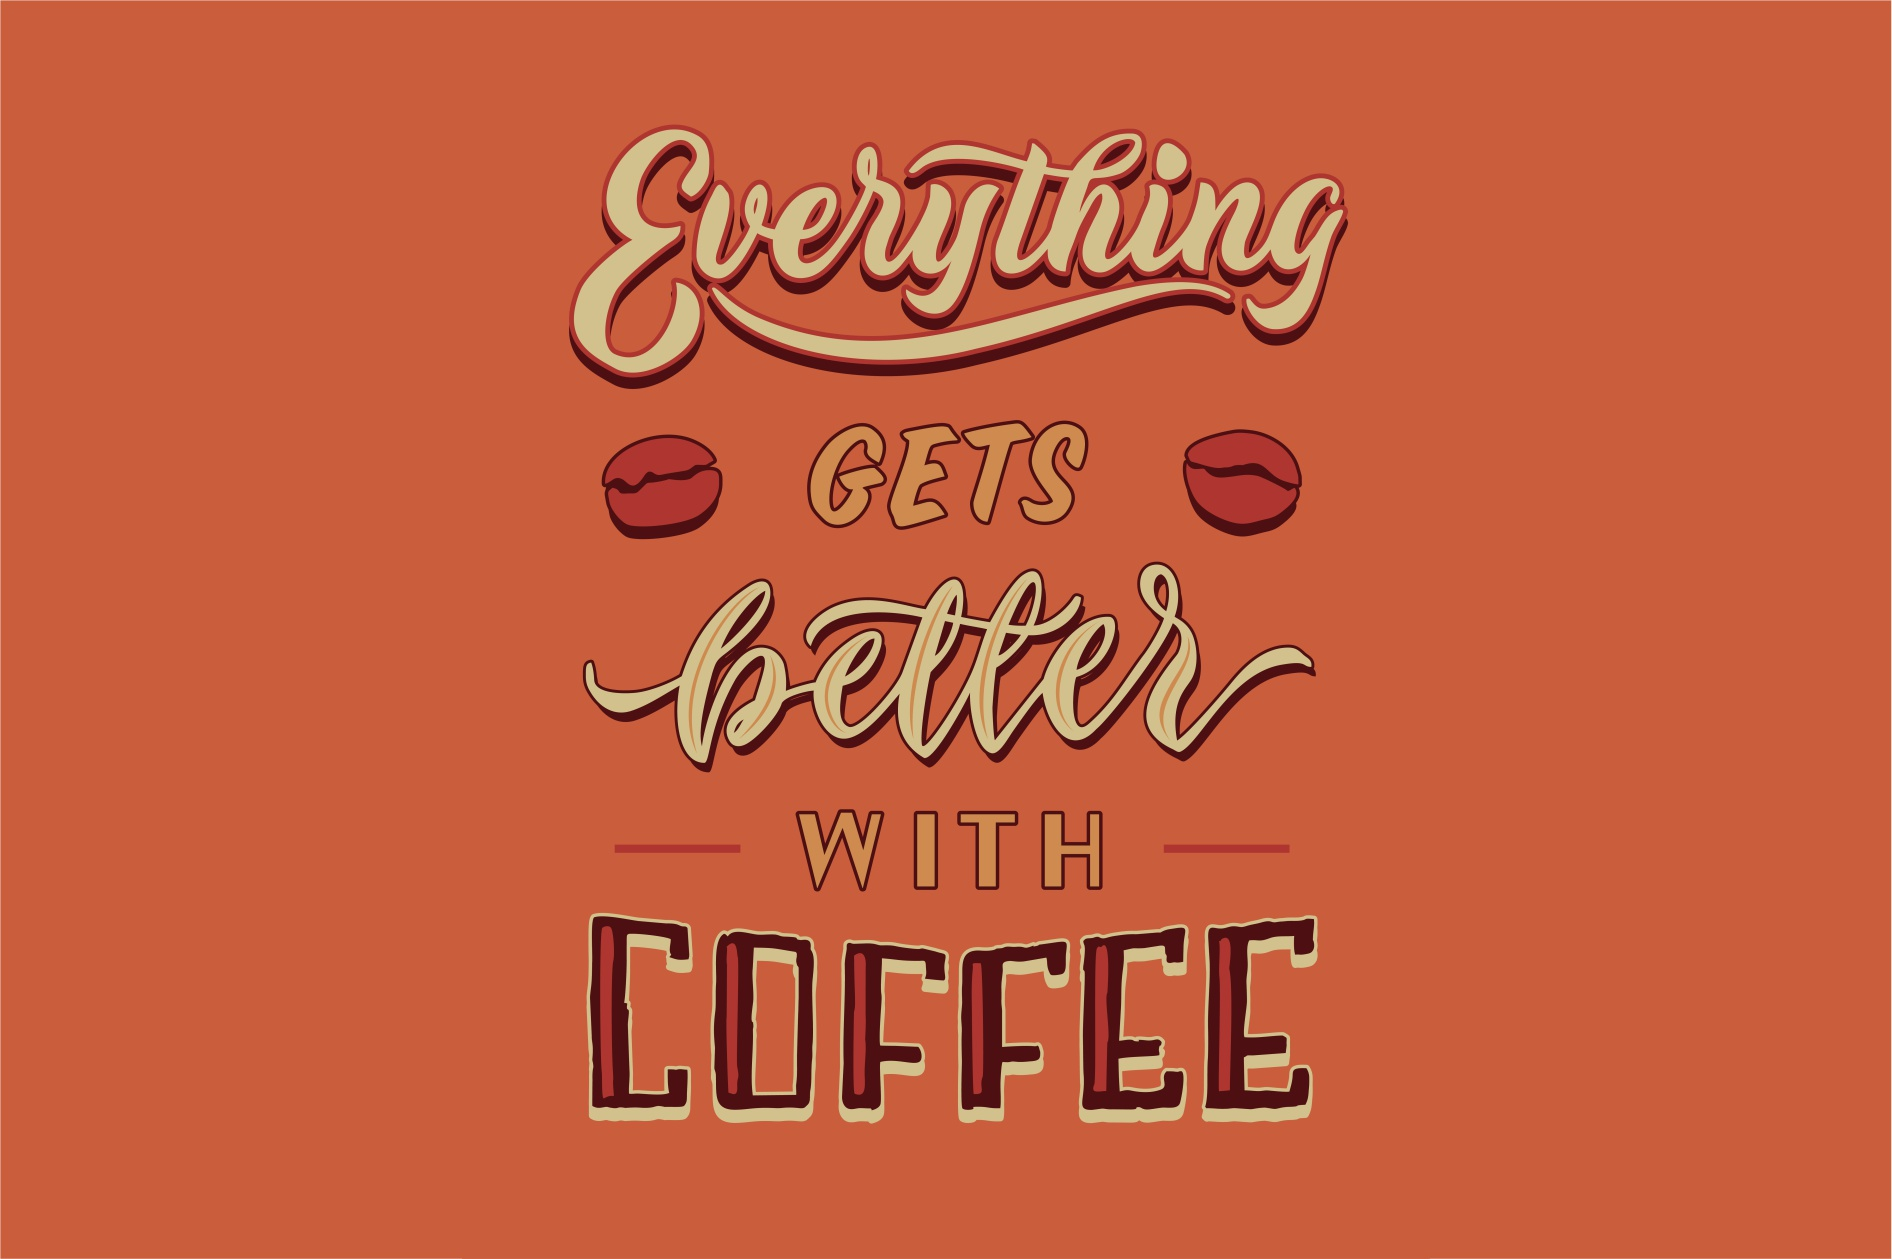 Download Free Everything Gets Better With Coffee Graphic By Brothers Graphic for Cricut Explore, Silhouette and other cutting machines.